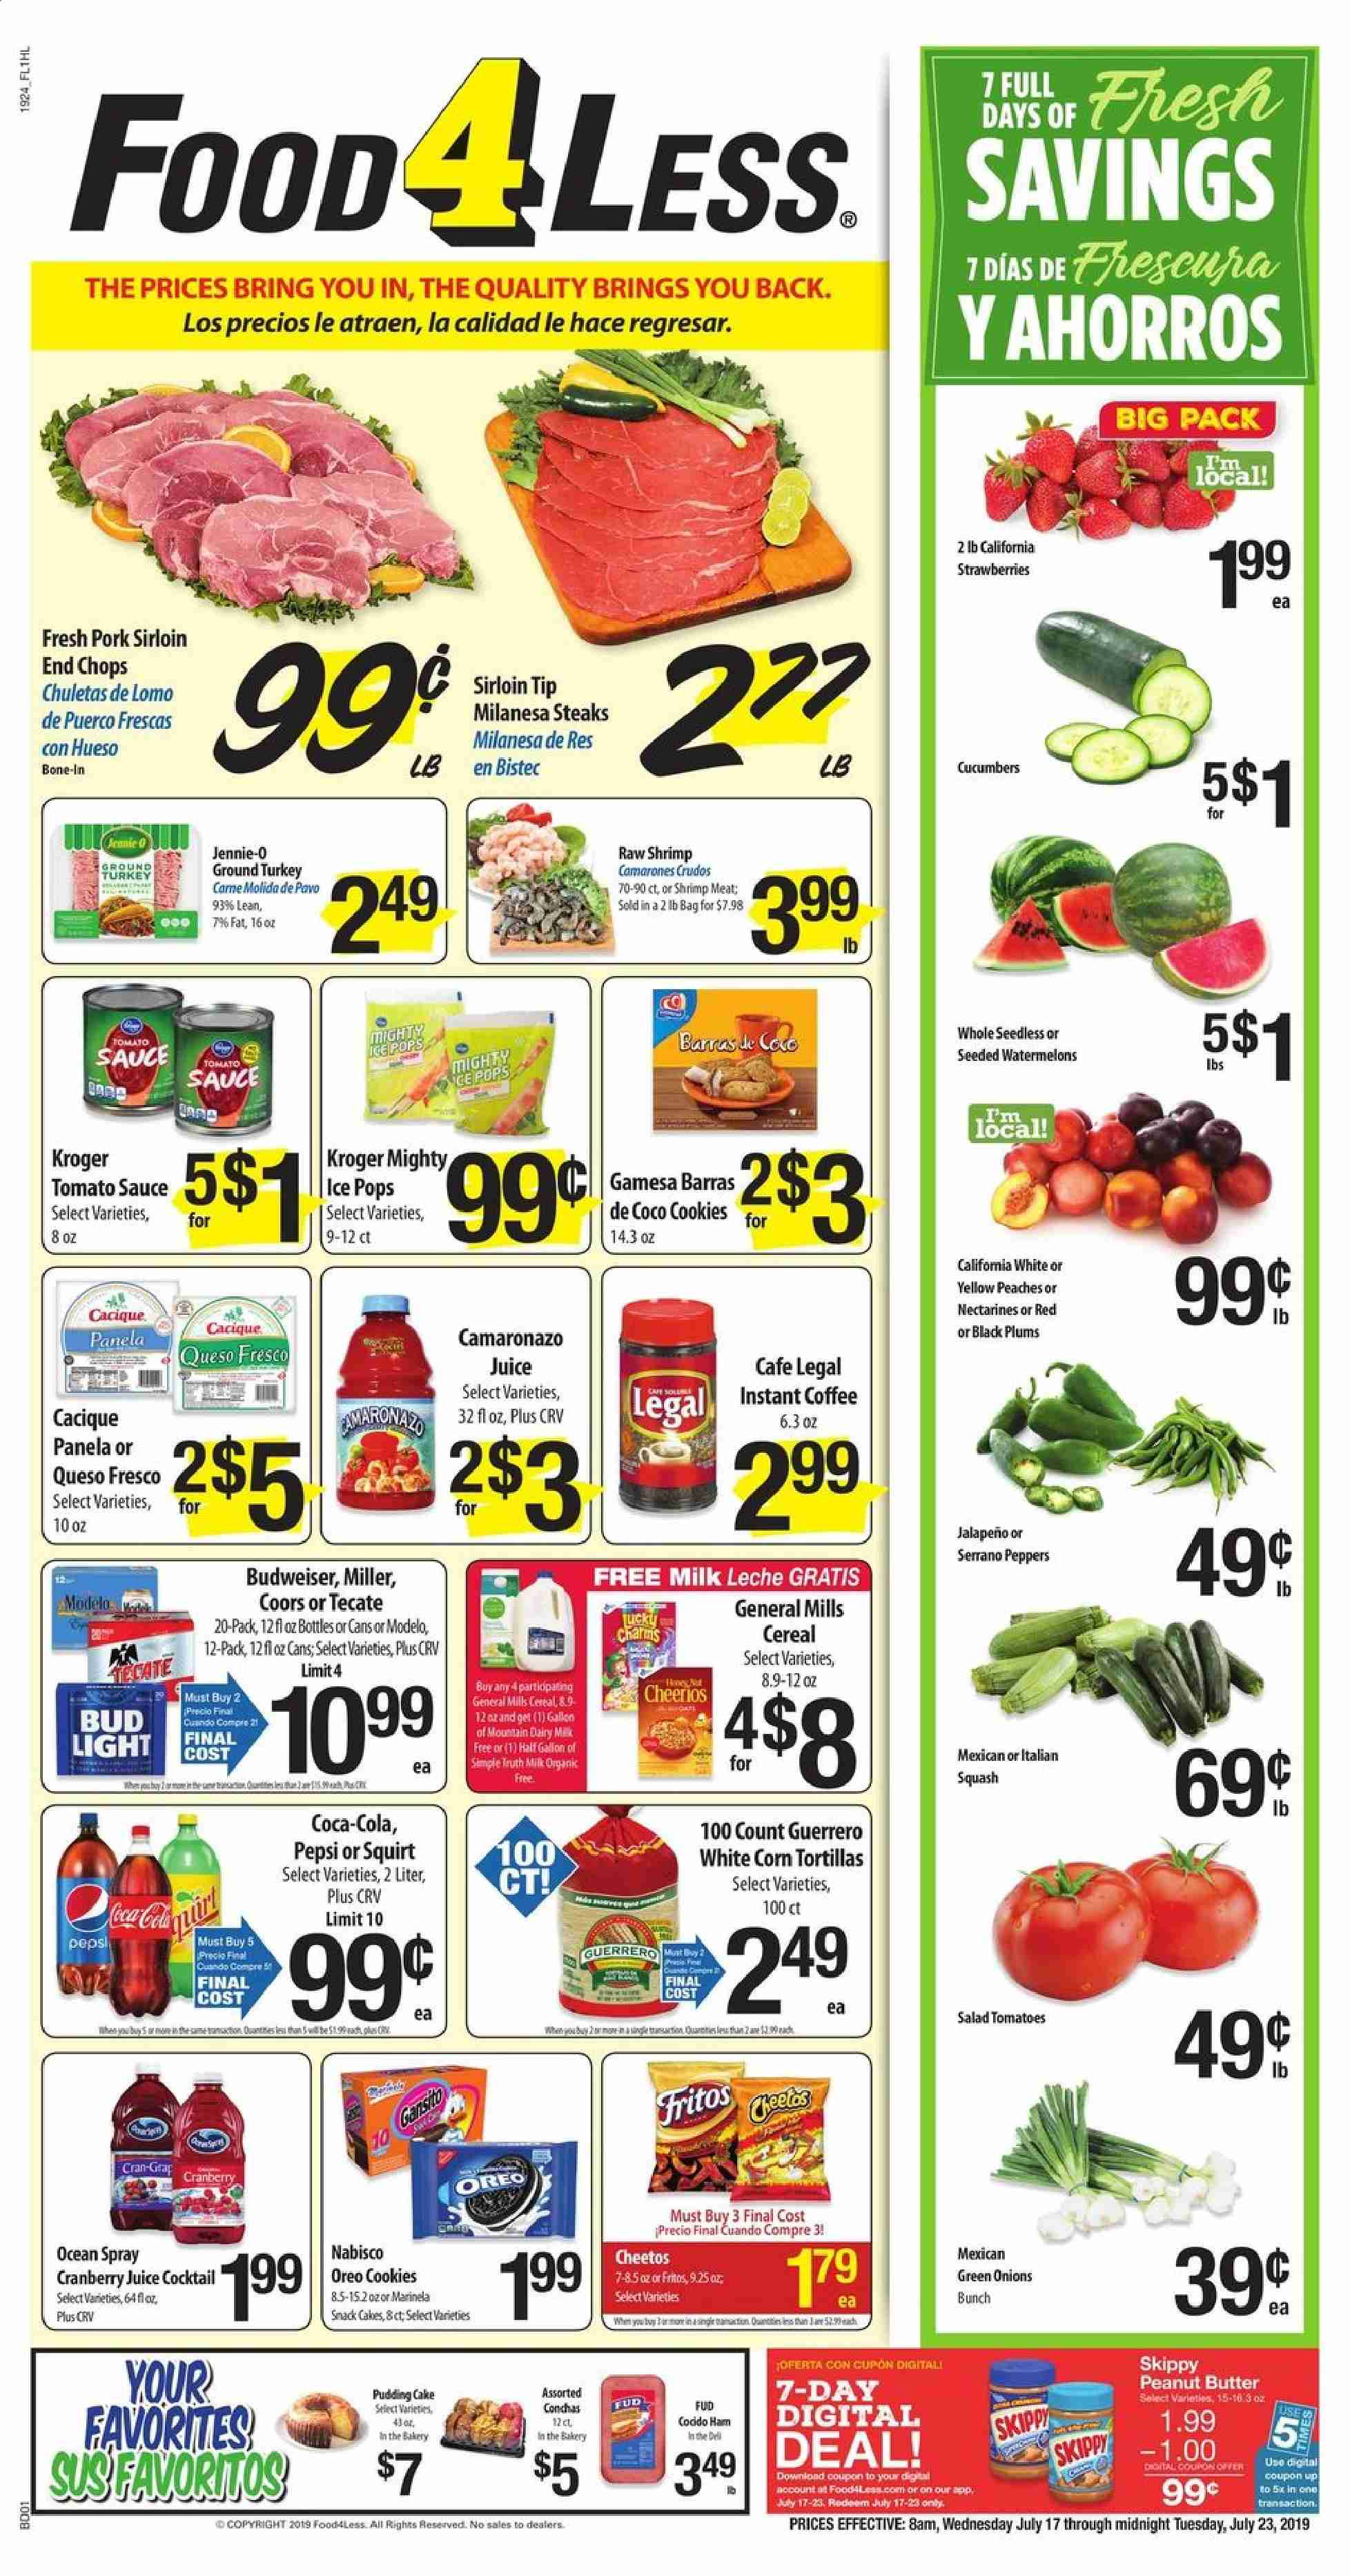 Food 4 Less Flyer  - 07.17.2019 - 07.23.2019. Page 1.